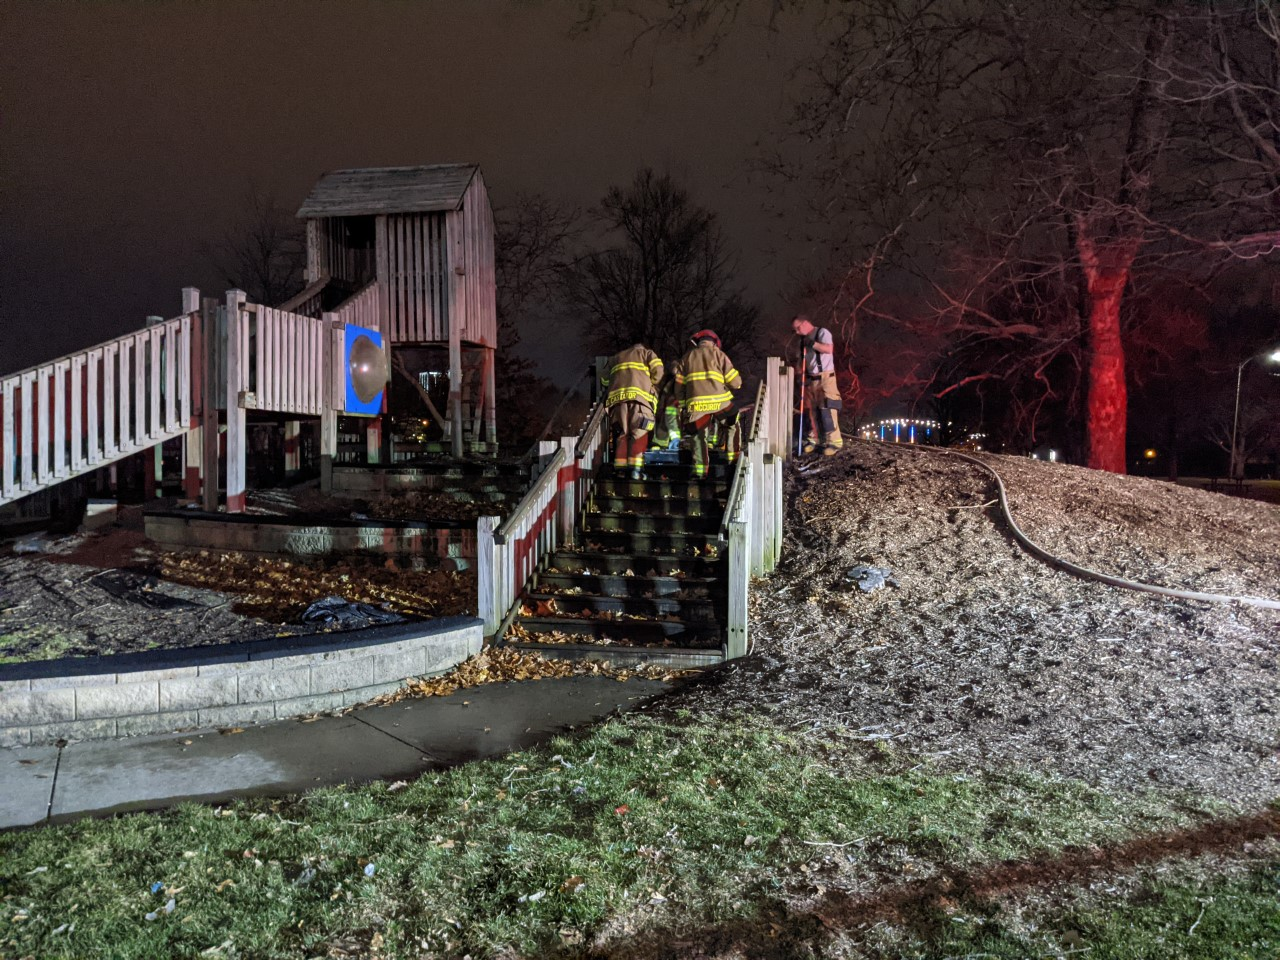 Lawton Park playground damaged after small fire